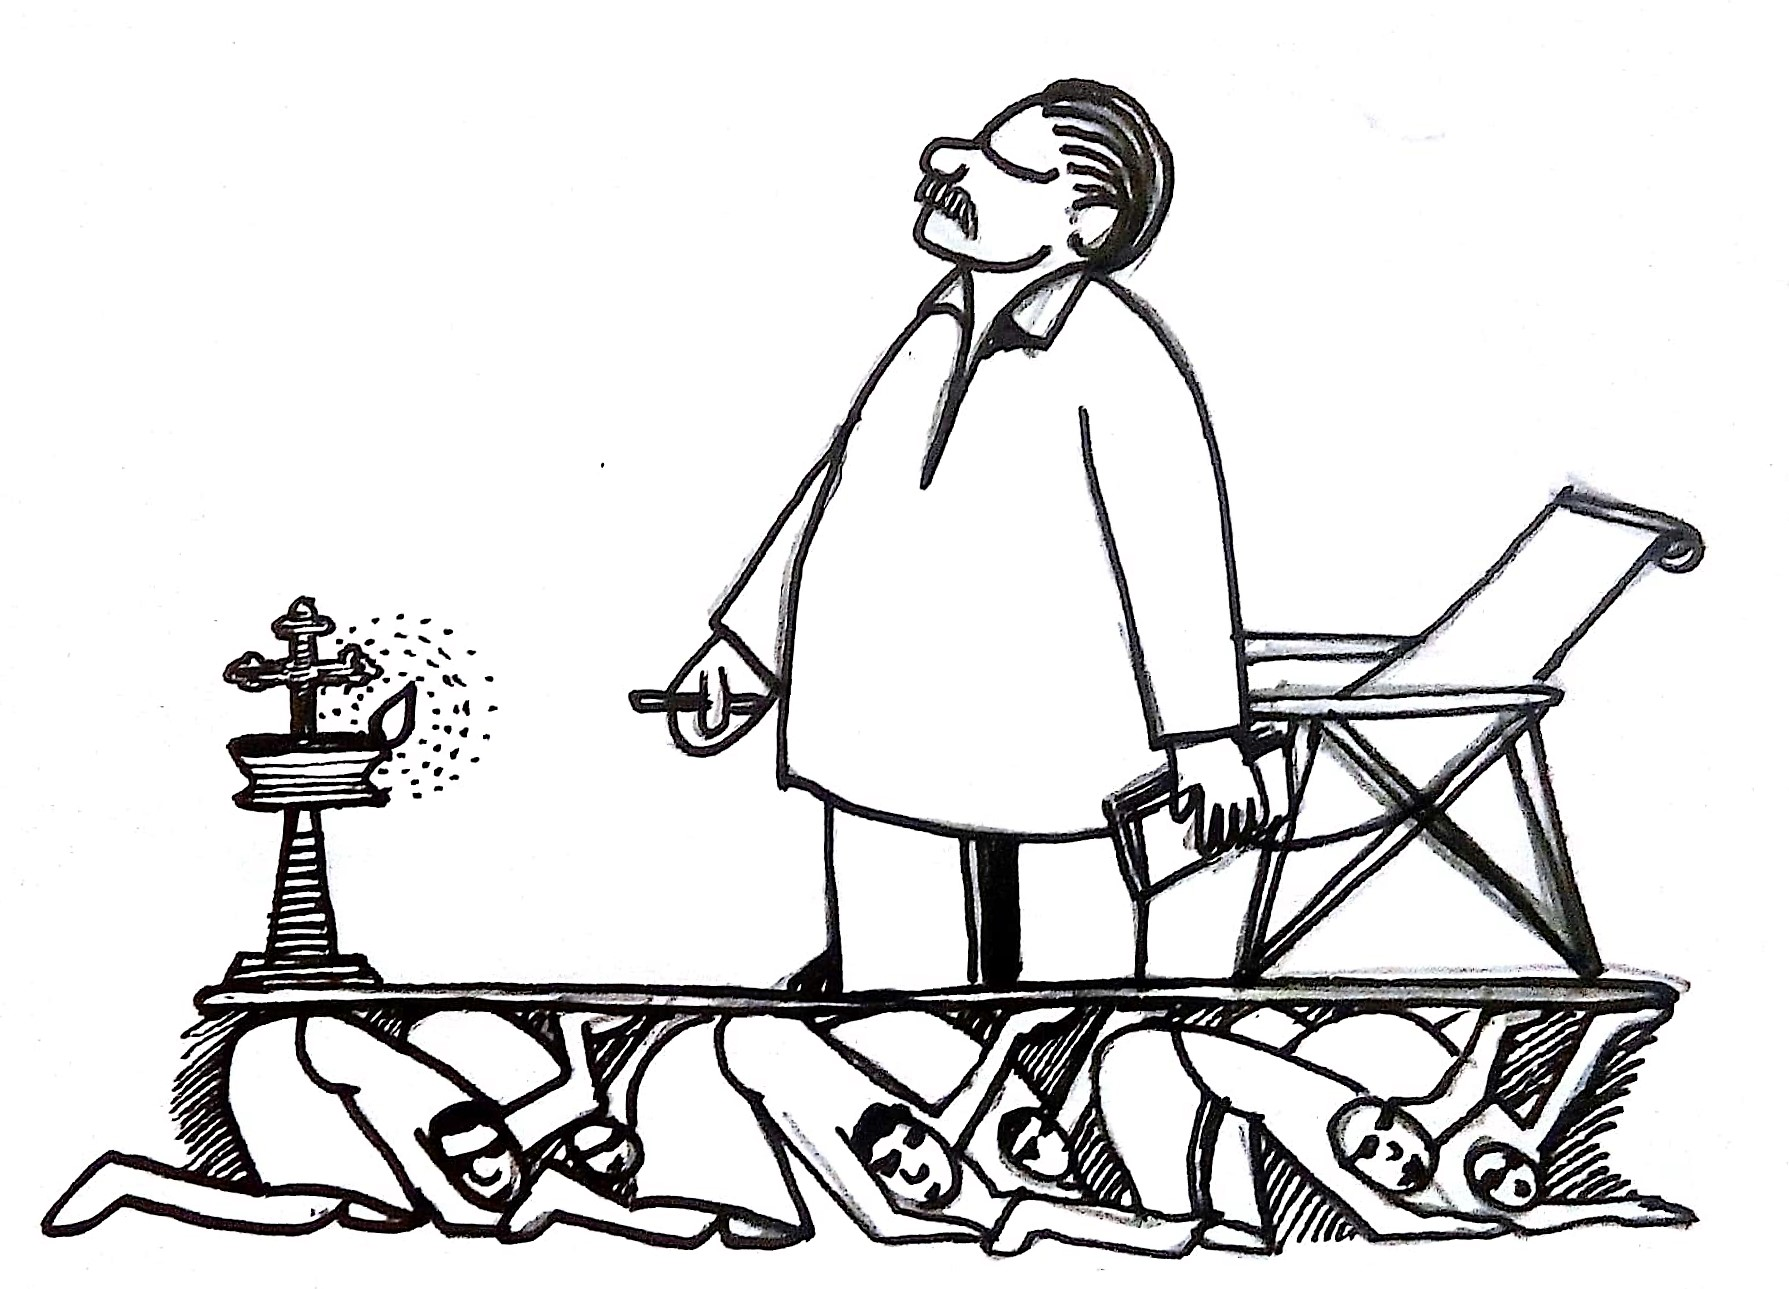 A man in his mundu stands in front of a lit lamp, looking solemnly towards the sky, eyes closed. He is propped up on a platform by people who are kneeling on their knees